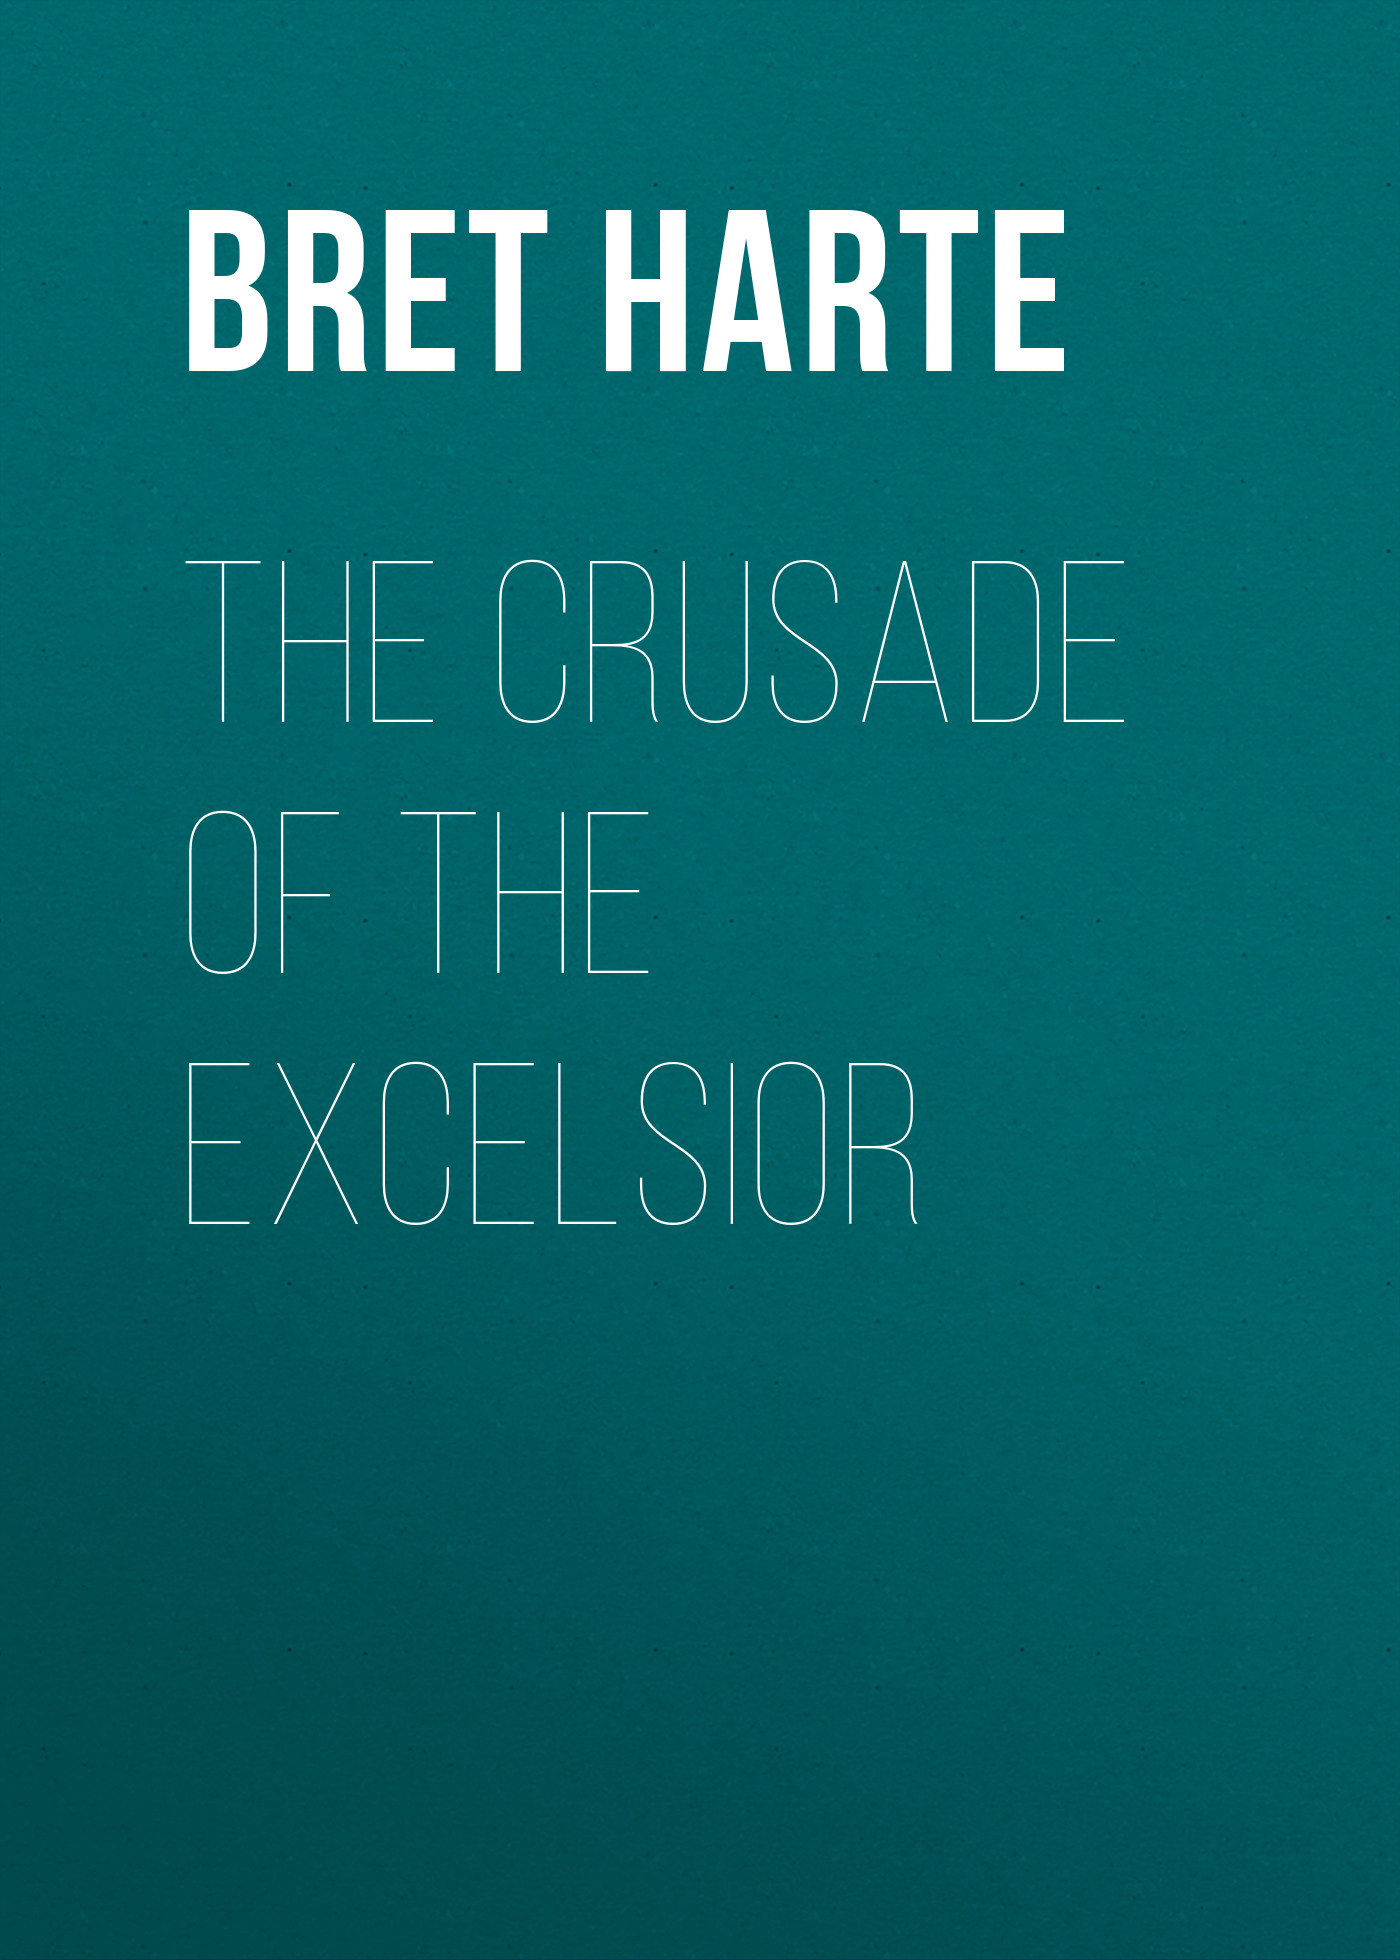 Bret Harte The Crusade of the Excelsior стоимость